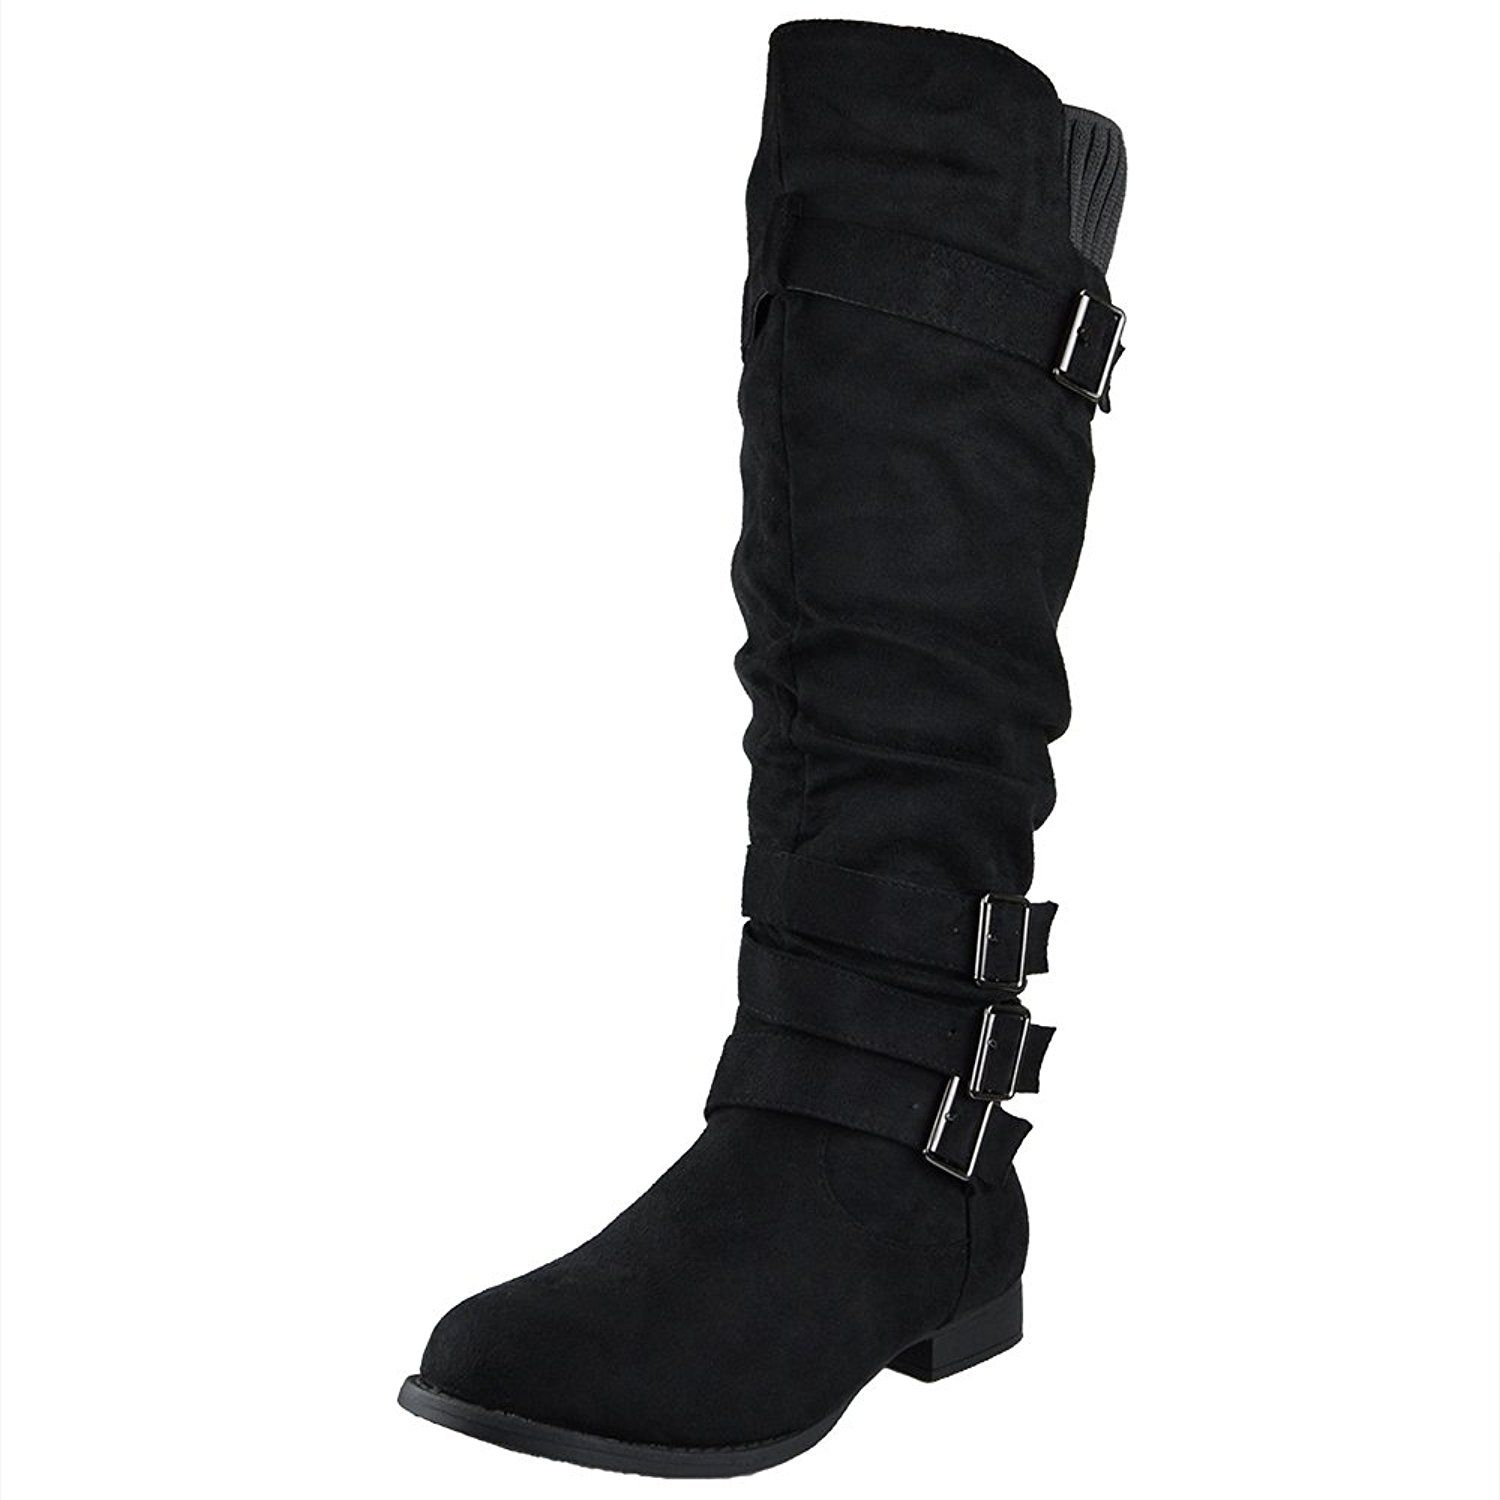 a041be9bac2 Womens Knee High Boots Ruched Four Buckles Suede Knitted Calf Black    You  can find more details here   Knee high boots